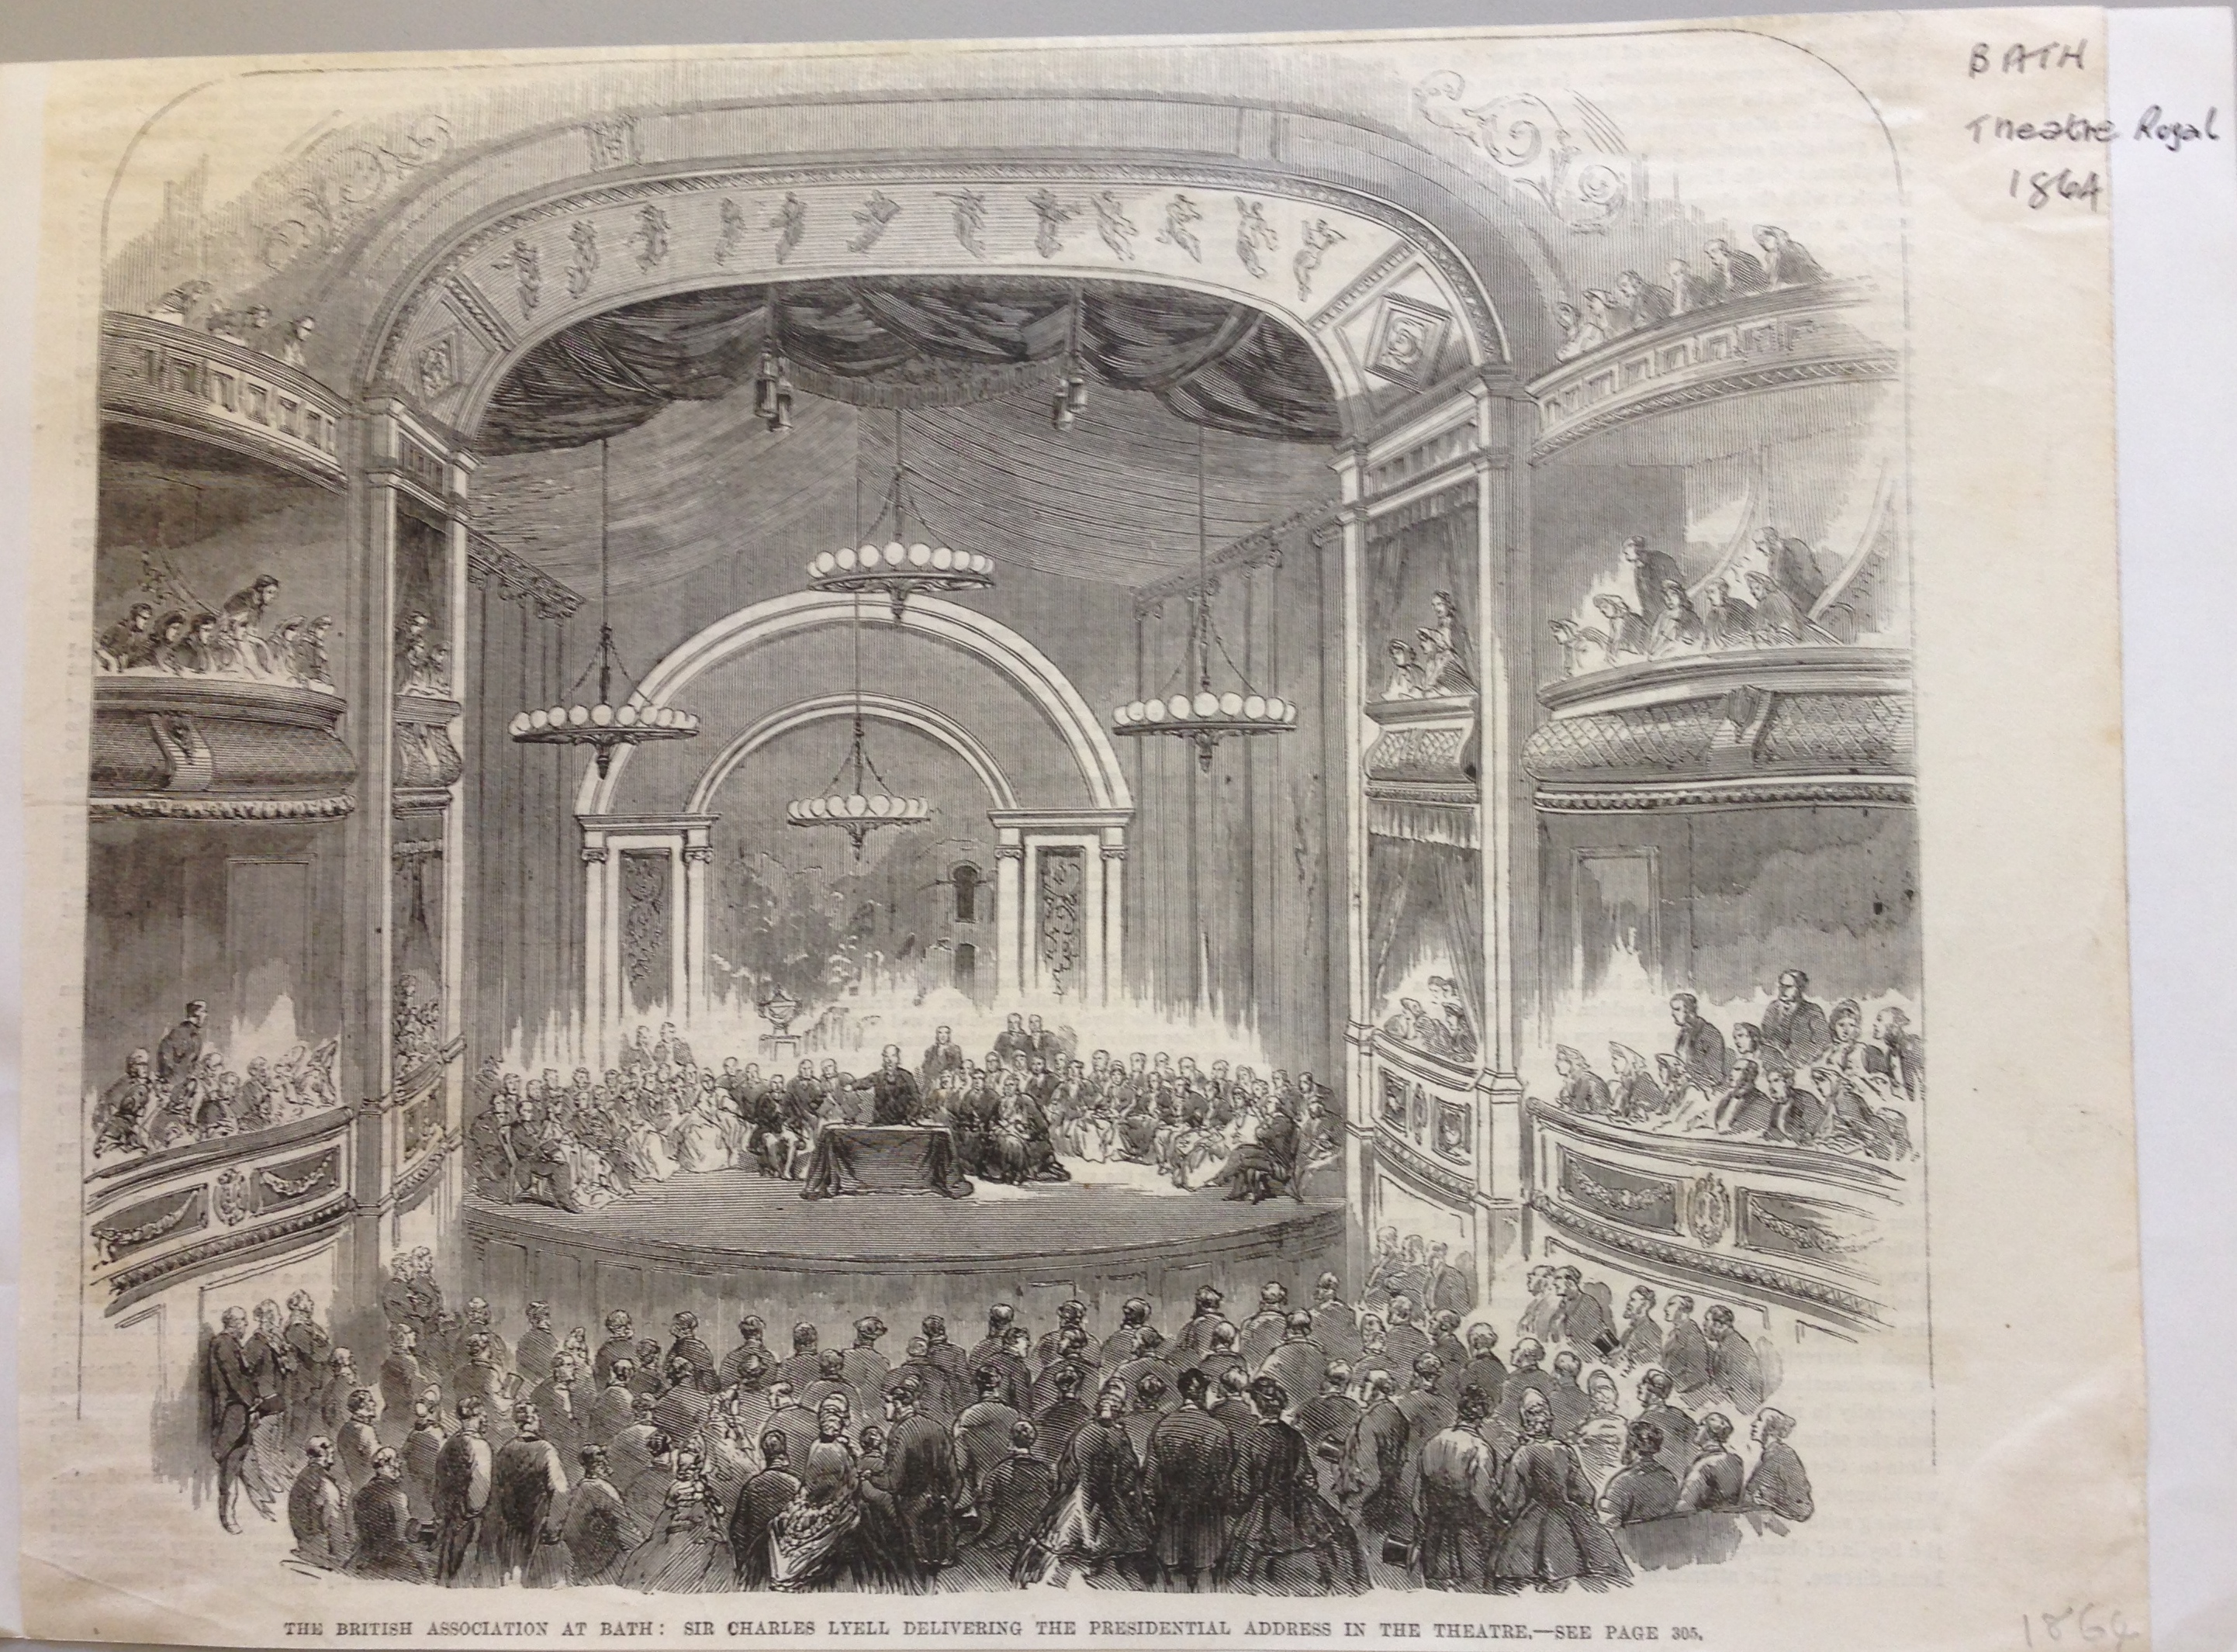 <b>Interior of Theatre Royal, Bath</b>     	</br>Interior of the Theatre Royal in Bath, c. 19th century.</br><br/><b>Source: </b><i>Used with permission from the University of Bristol Theatre Collection.</i>